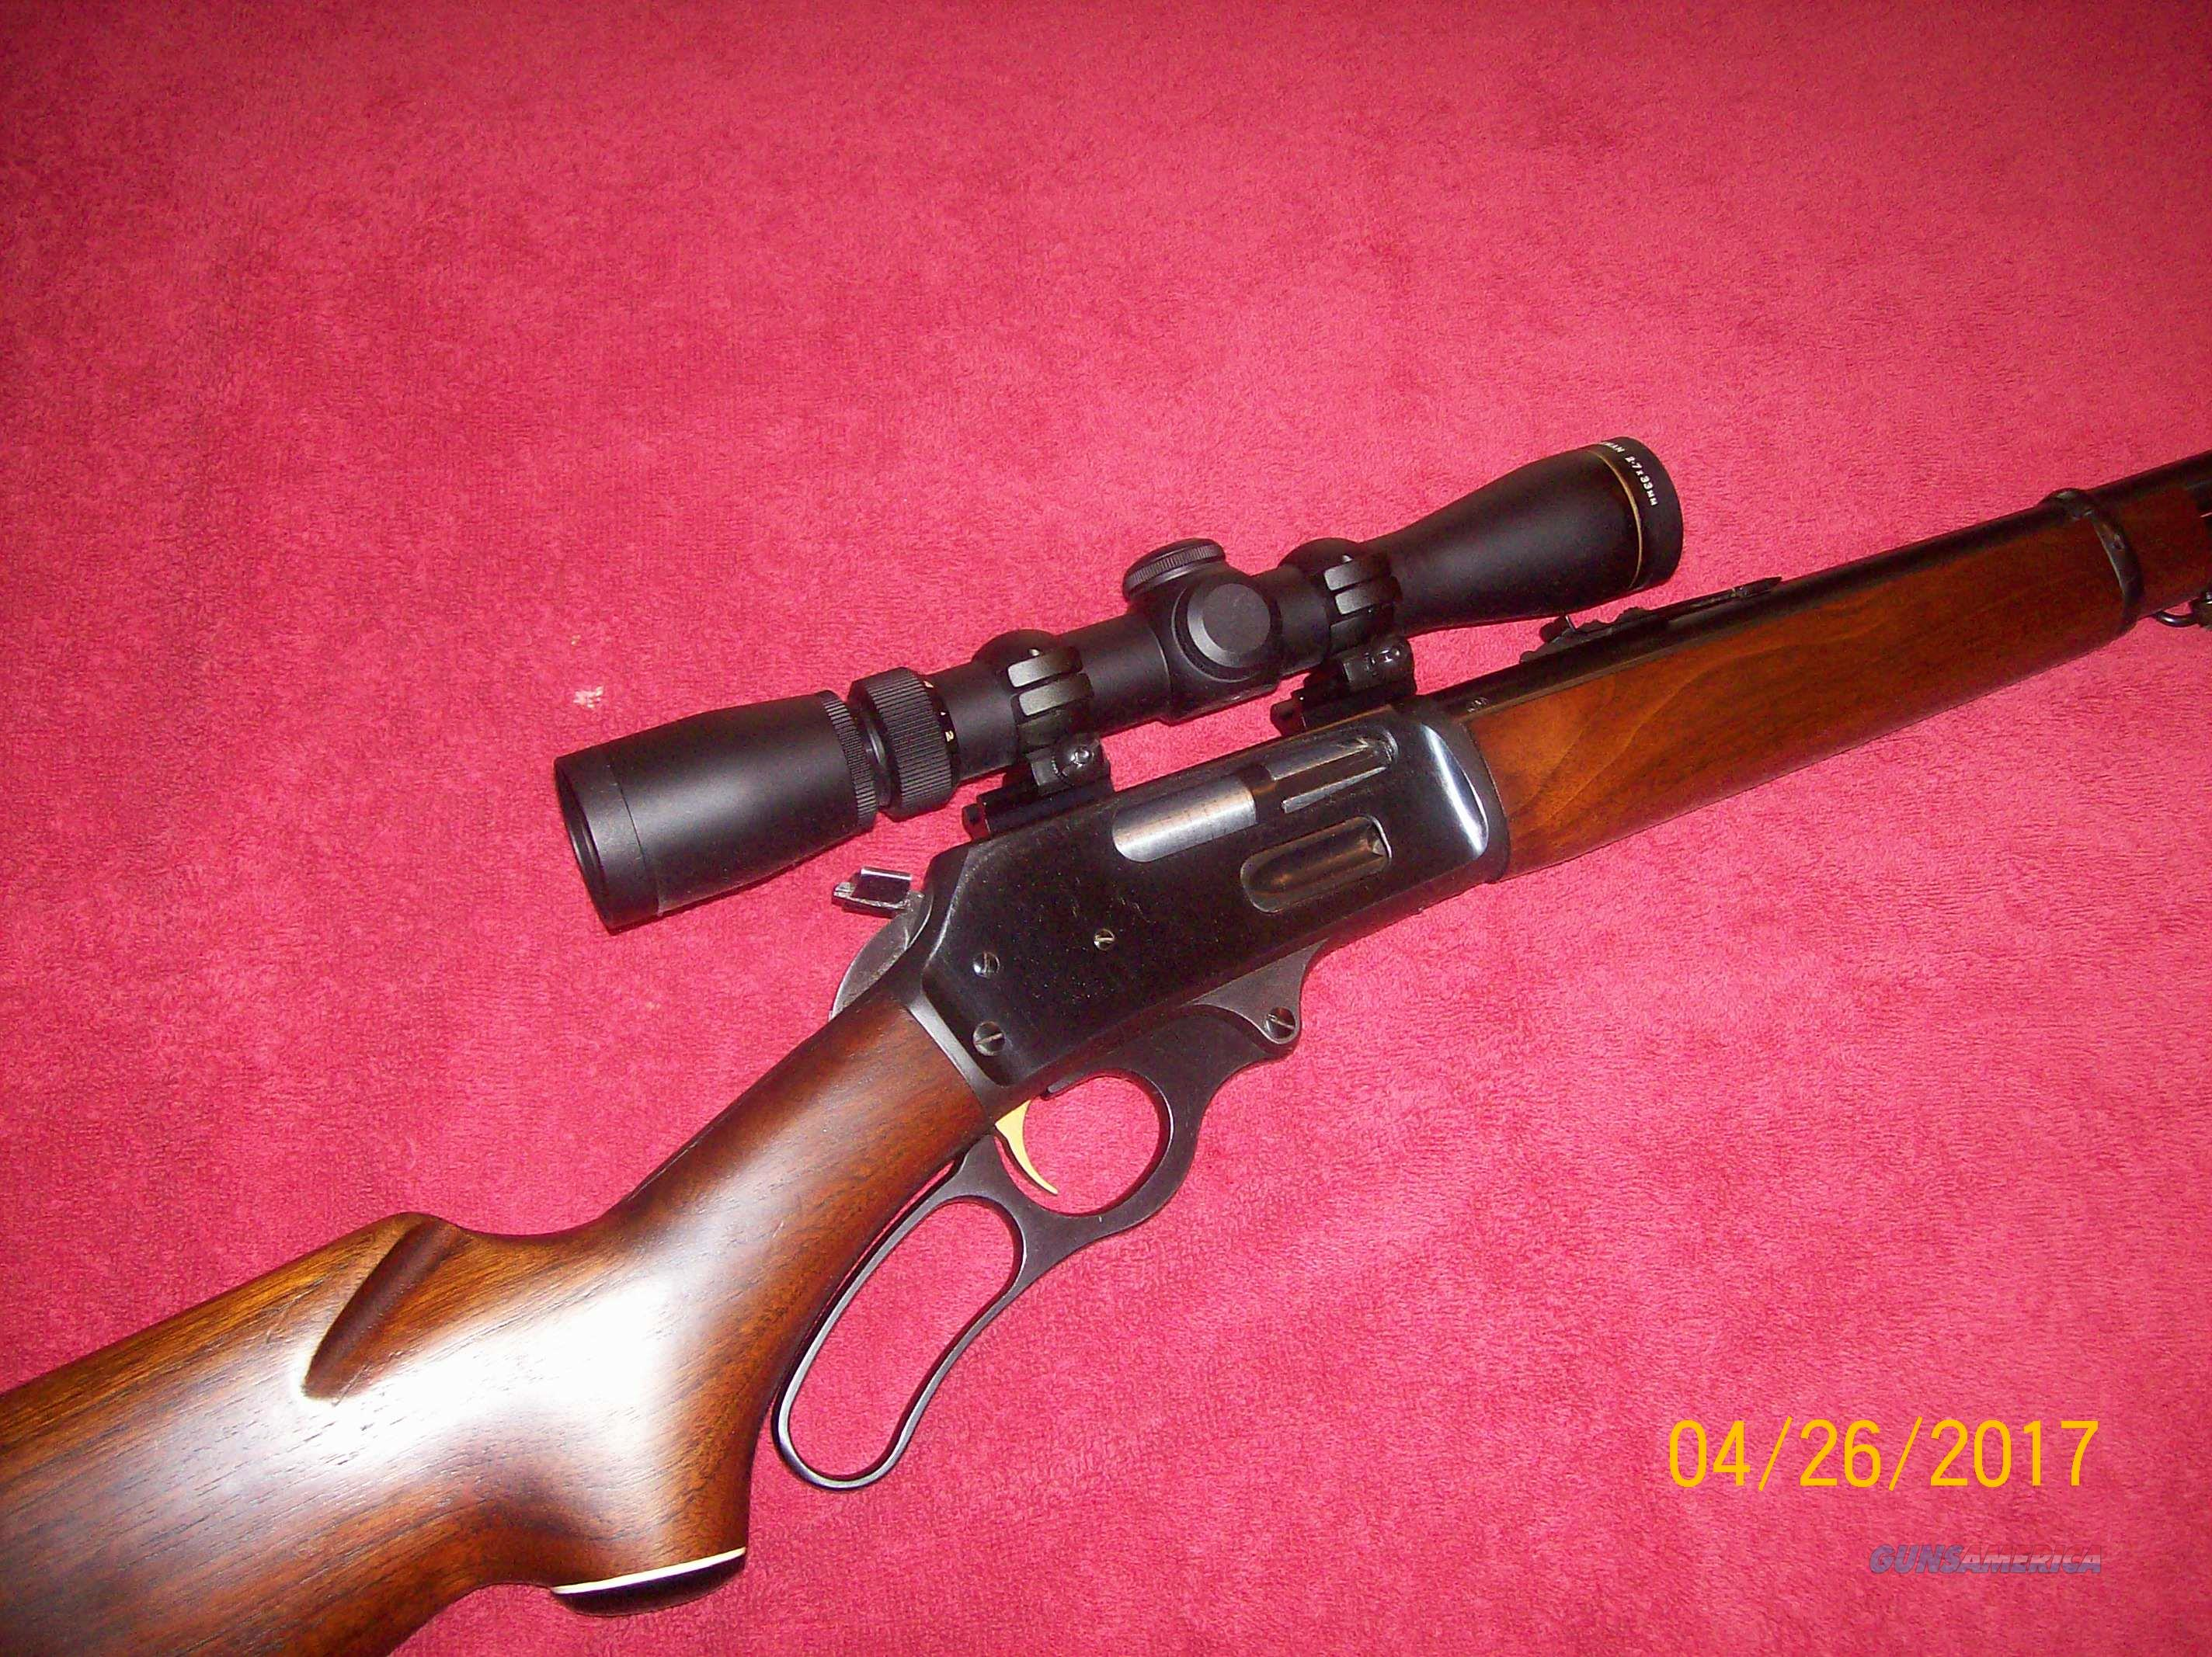 Marlin 336 with Leupold VX-I  2x-7x by 33mm  scope and new pack of Hornady 35 Rem. brass    Guns > Rifles > Marlin Rifles > Modern > Lever Action